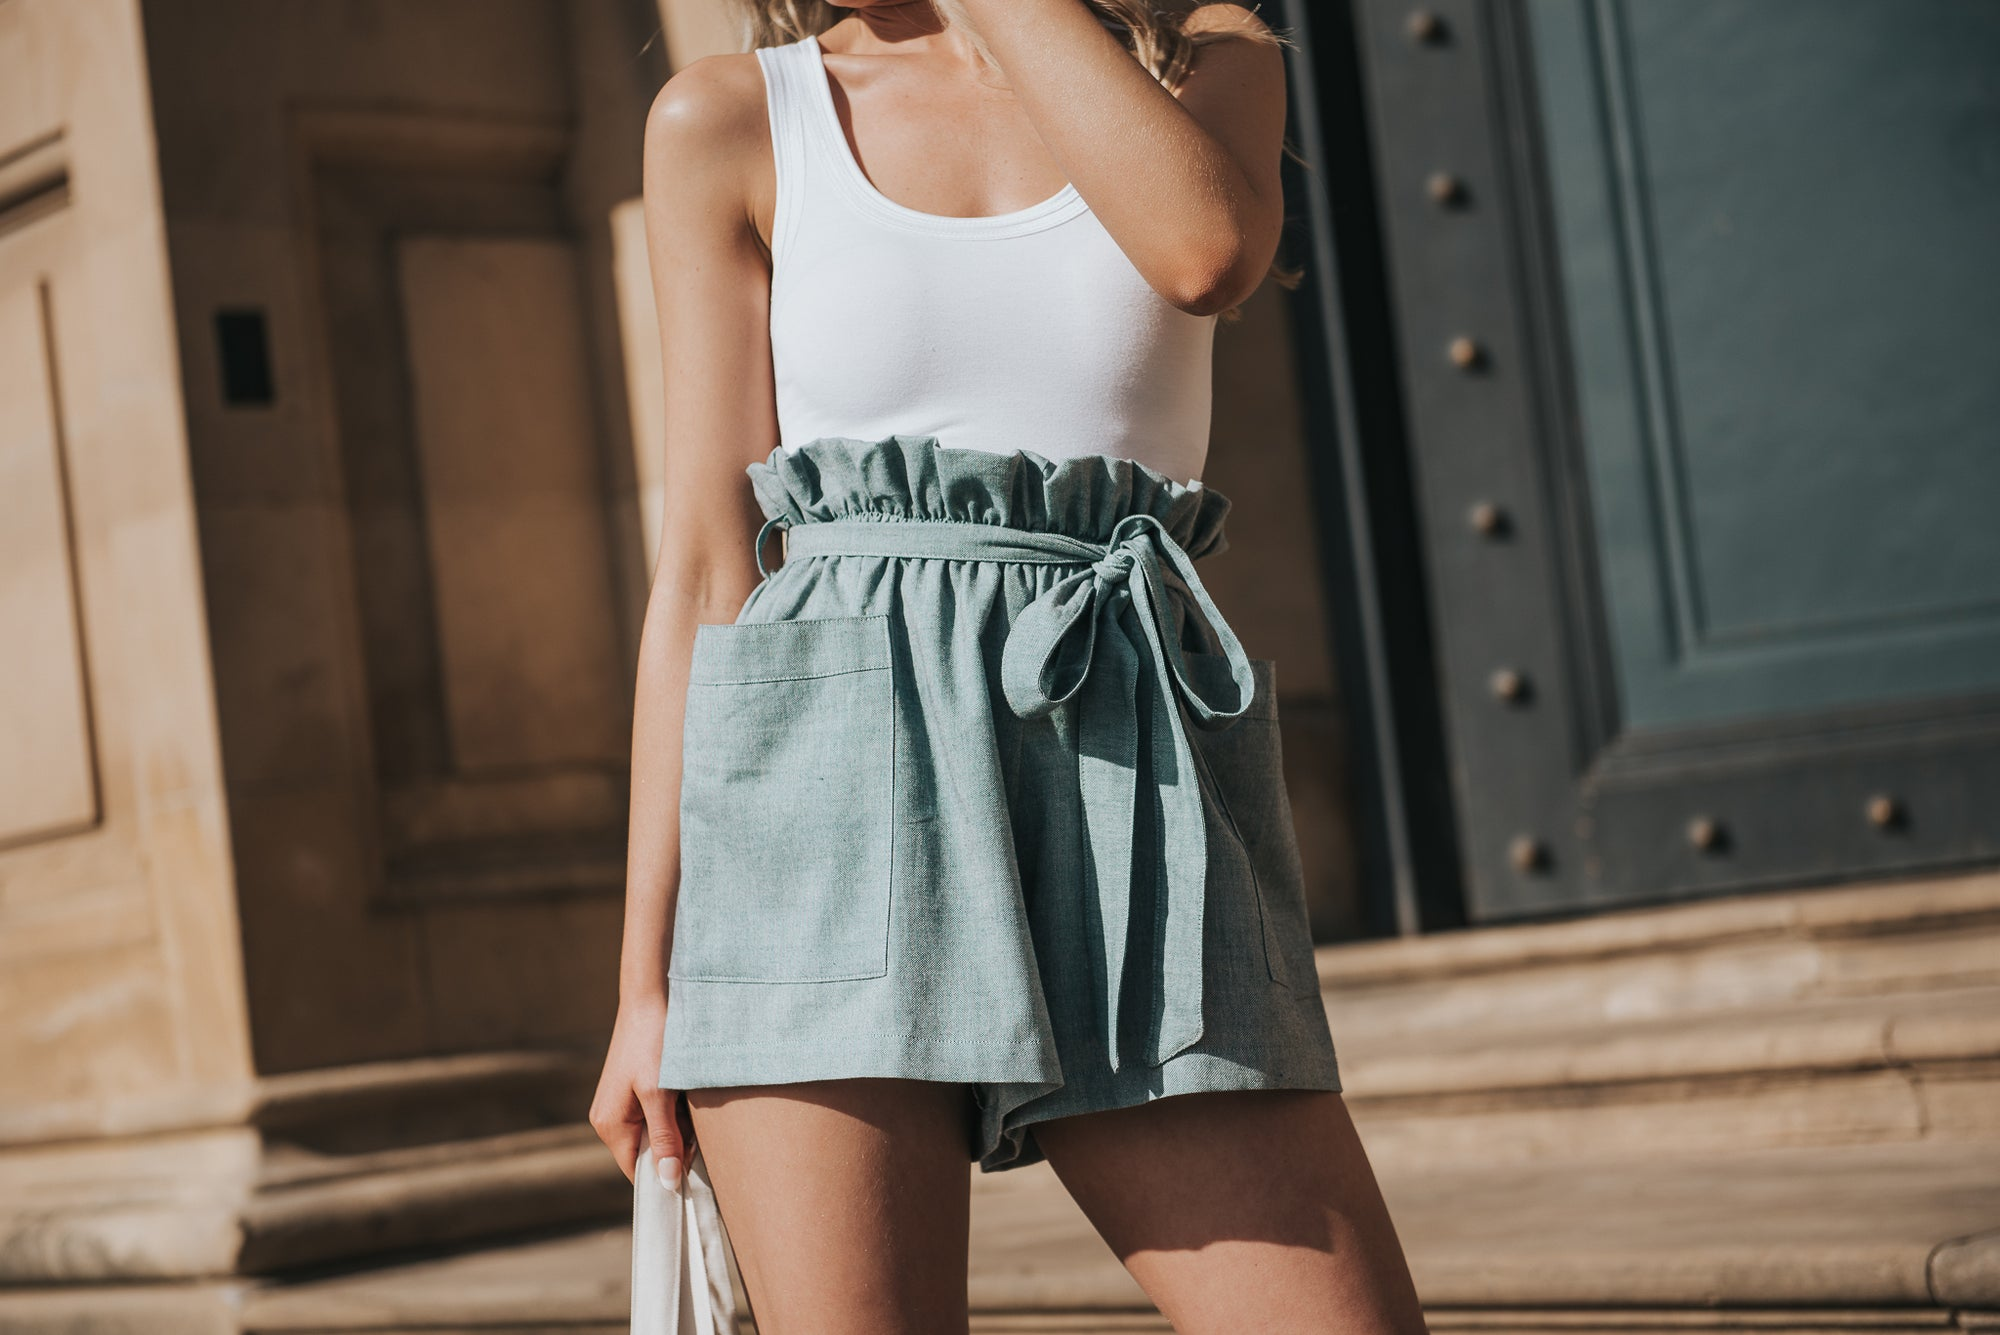 Standing on stone steps in front of large parisian style blue door. The Eva shorts, loose fitting short with elasticated paper bag waist in a soft handwoven cotton fabric. The shorts have large pockets. Styled with a scoop neck white cotton cami vest top